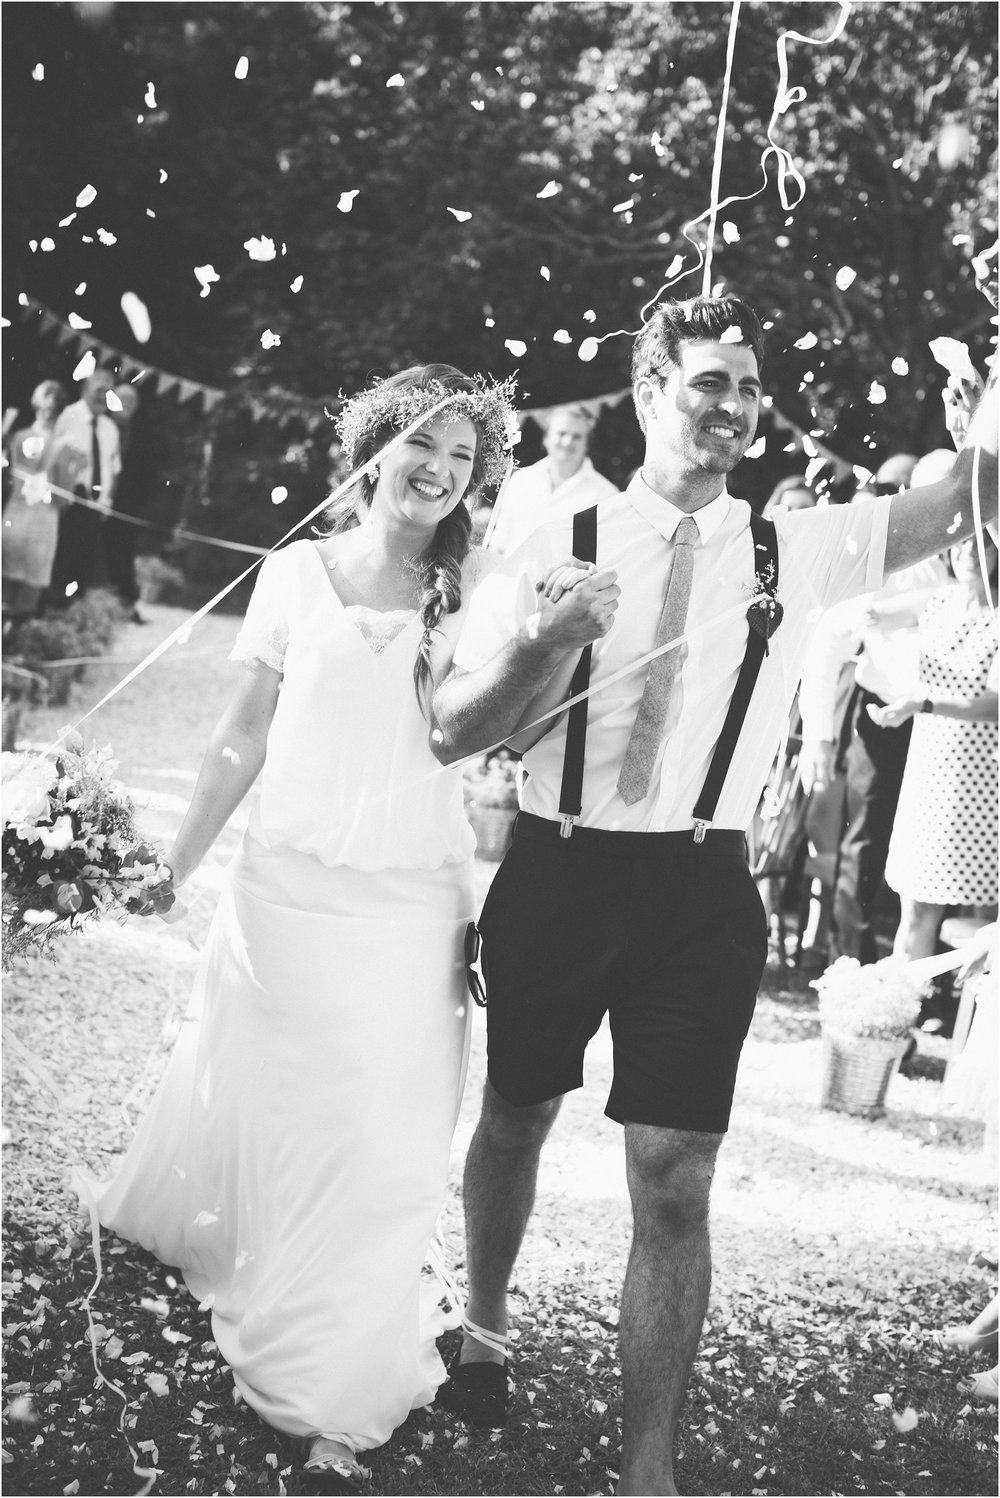 Ceremony_FionaClairPhotography-320.jpg